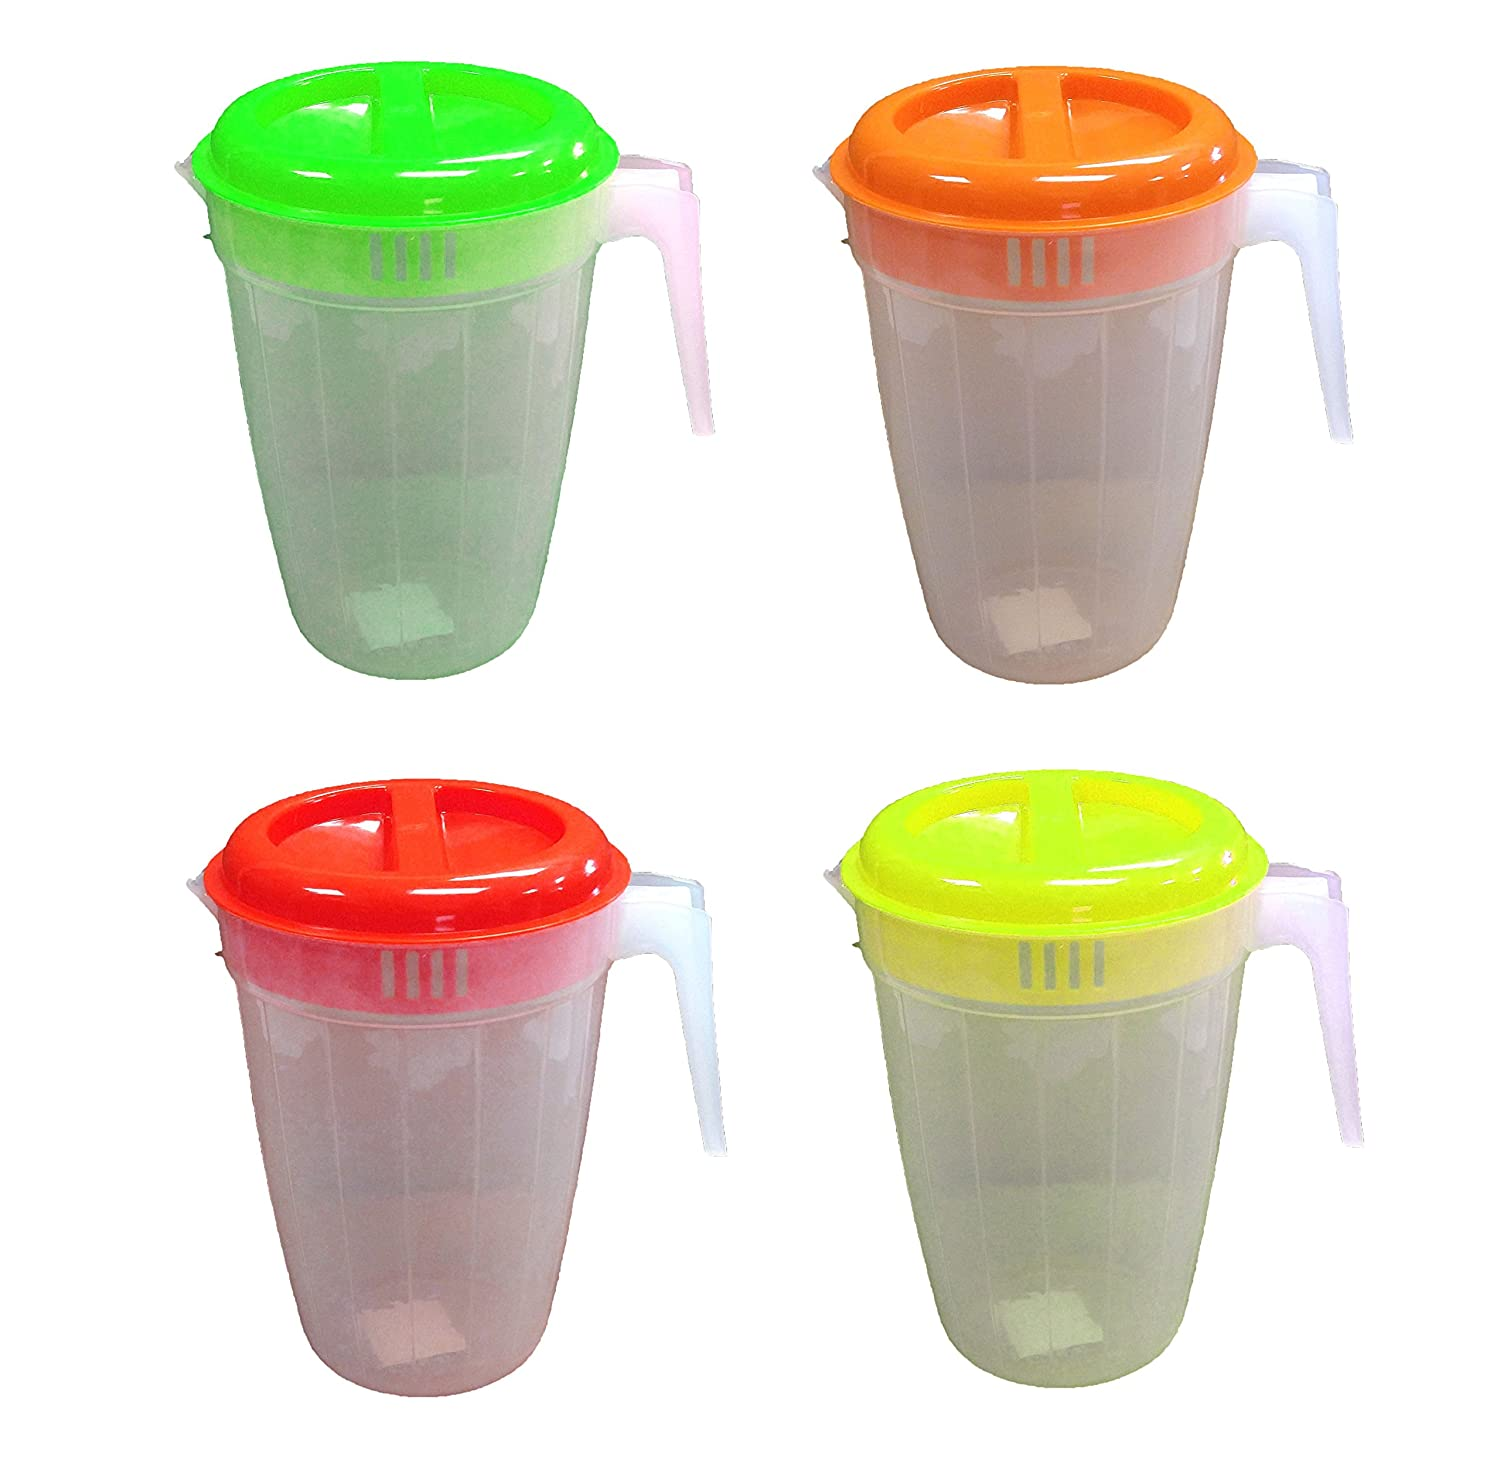 27014P Set of 4 Black Duck Brand Plastic Pitcher with 2-Slotted Lid and Handle in 4 Different Colors Regent Product Corp